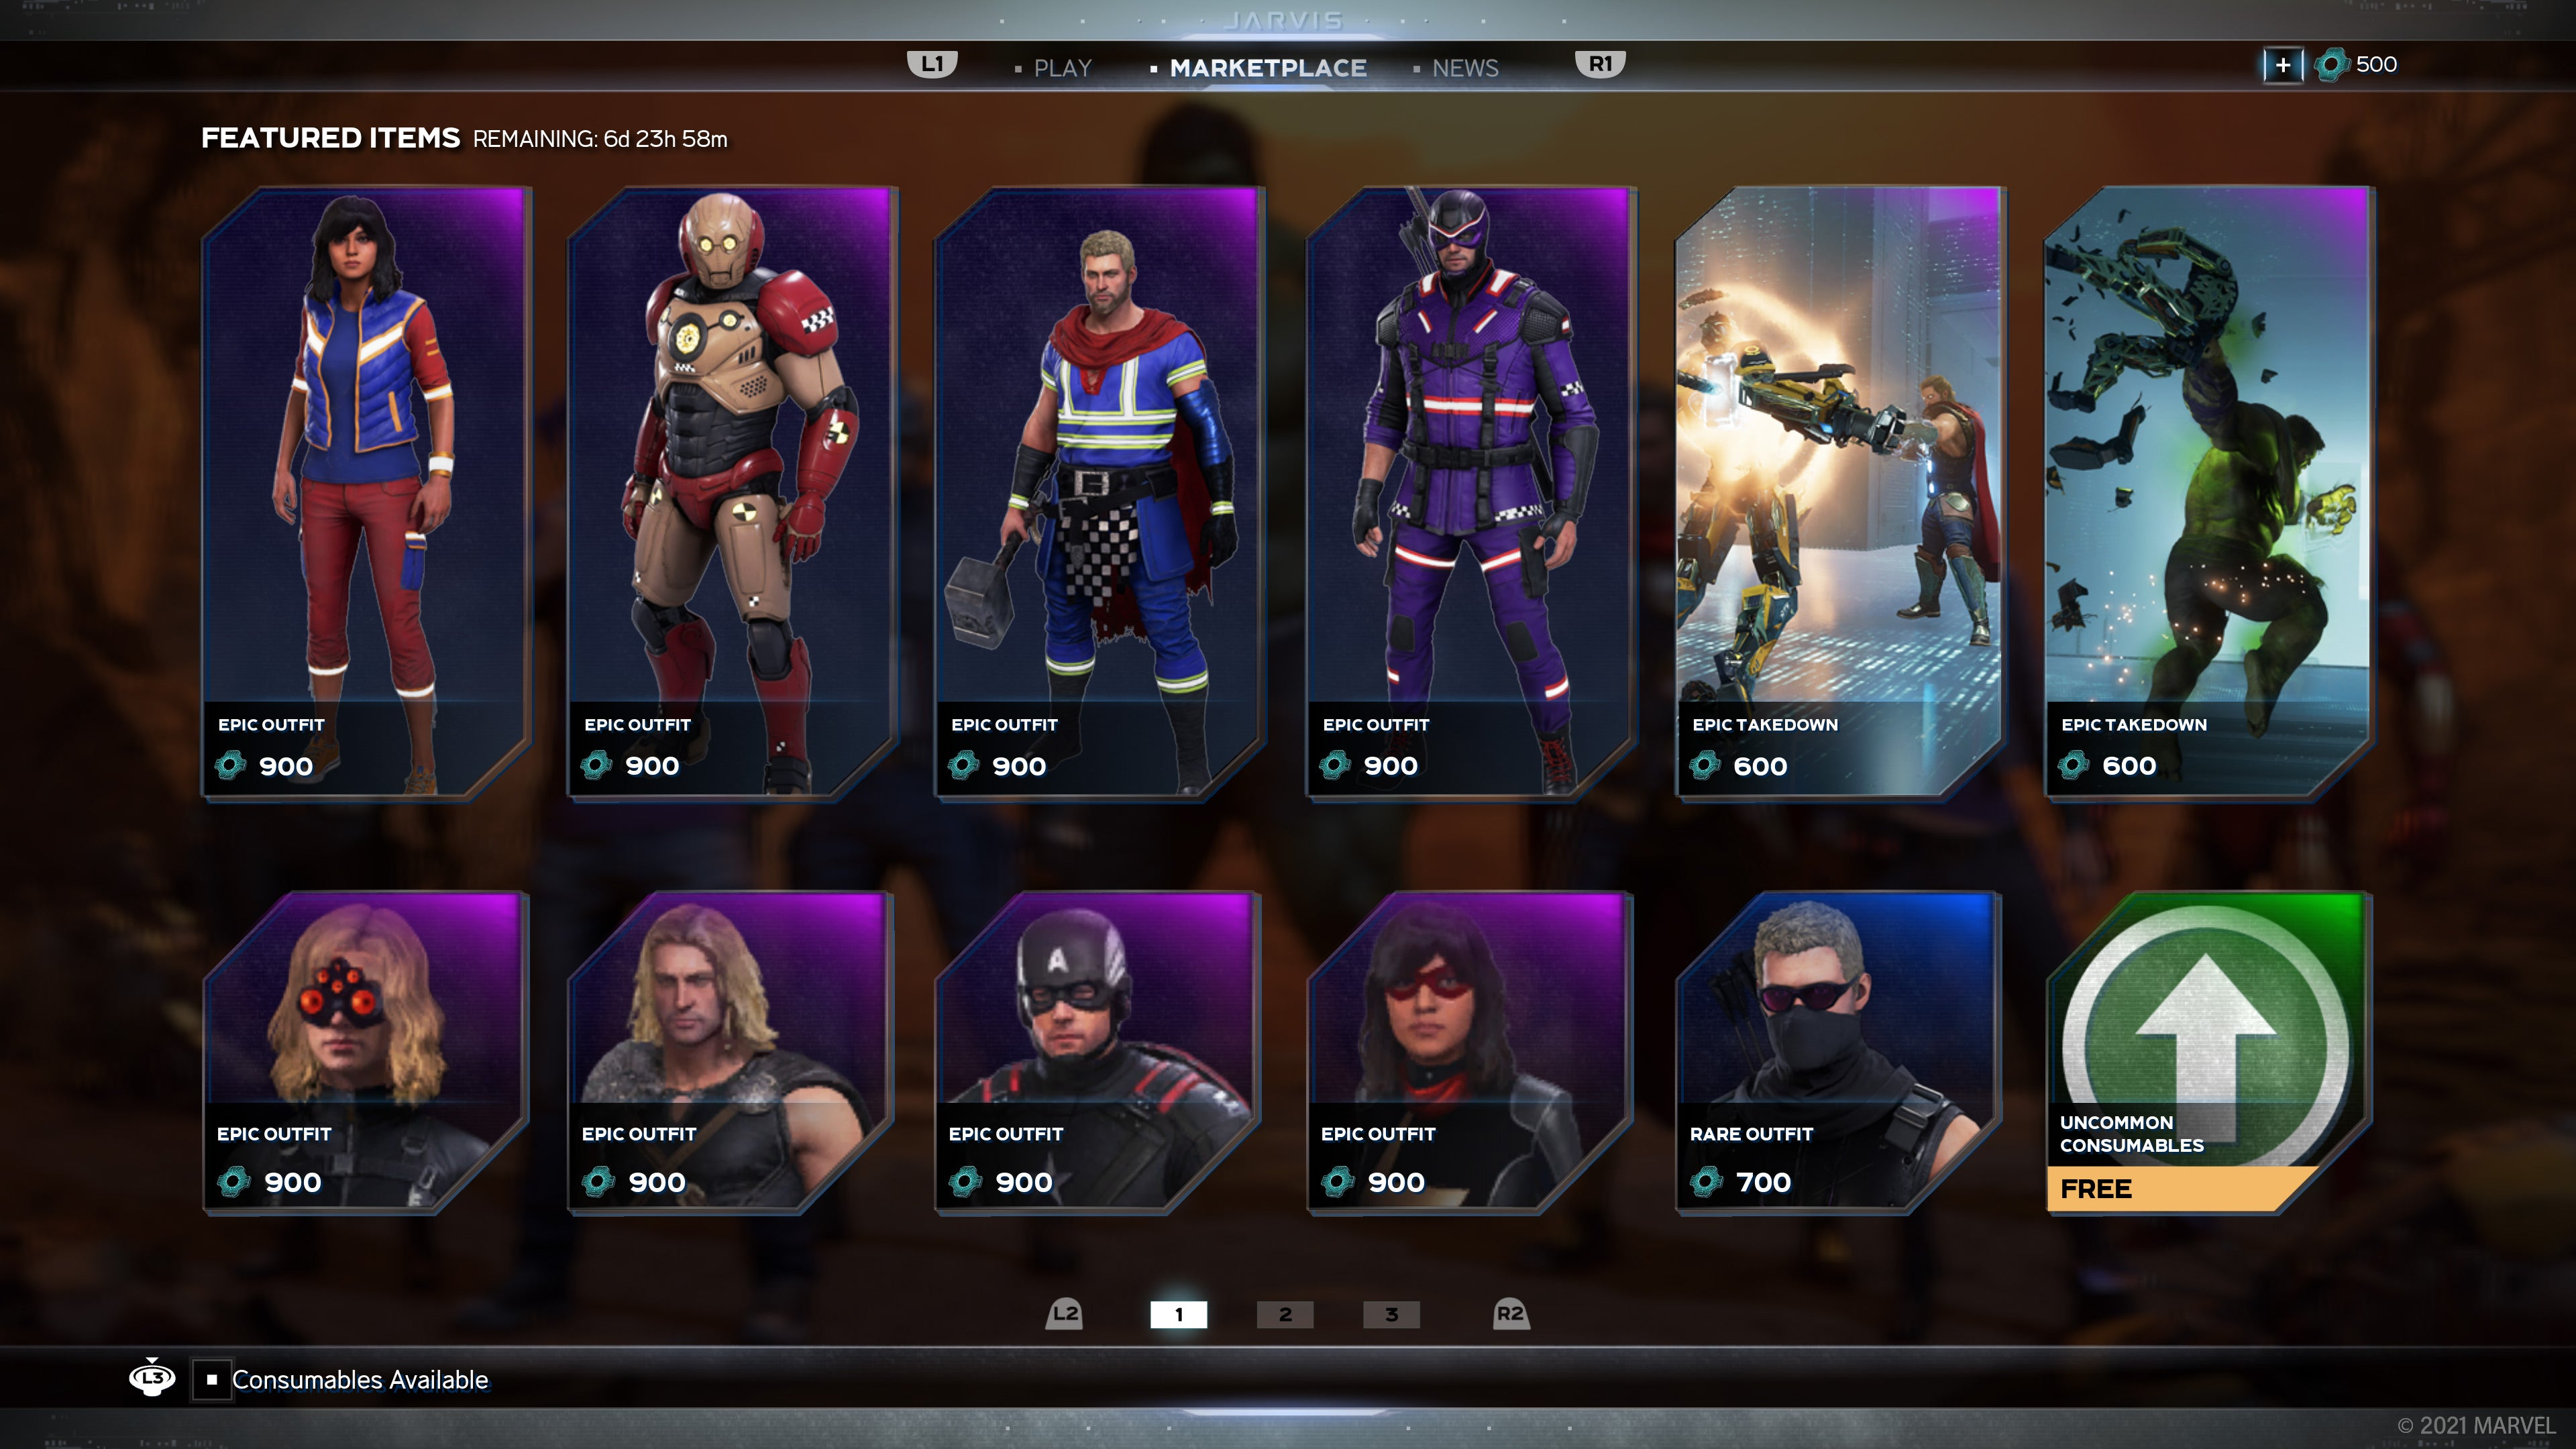 A screenshot of our in-game marketplace where players can purchase cosmetics